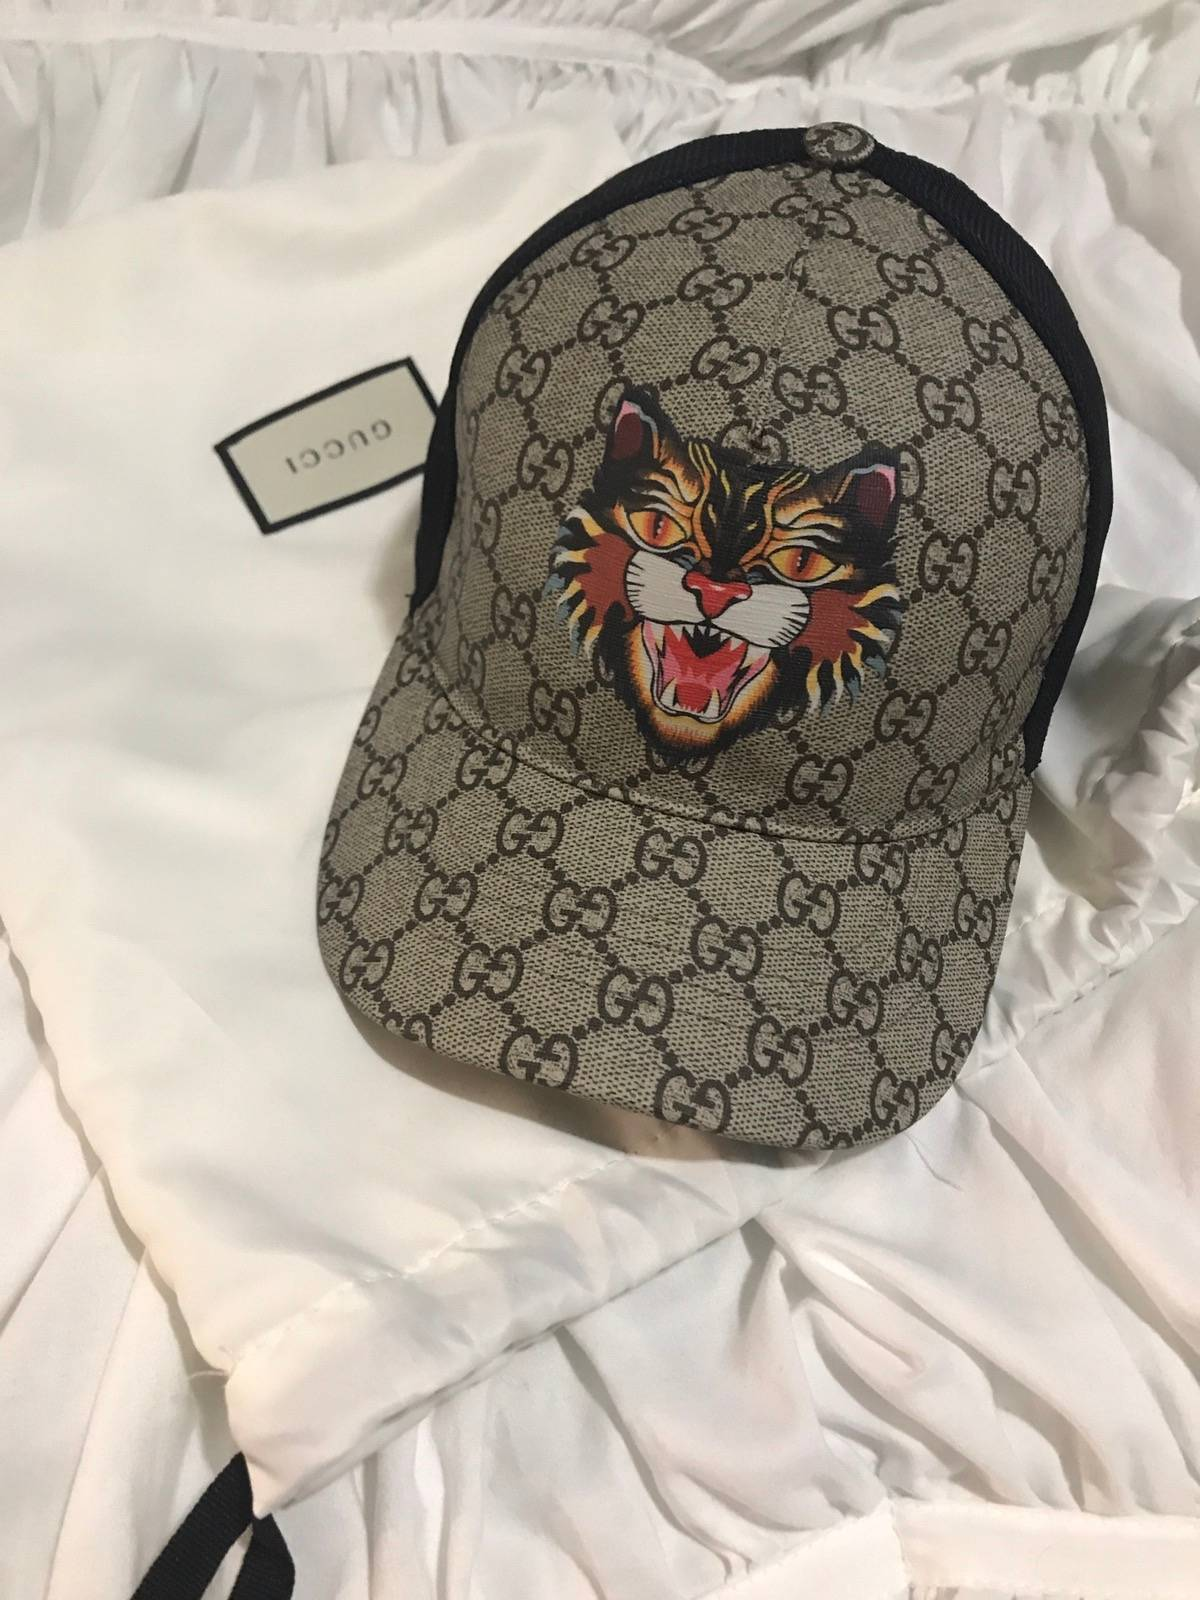 cd0bdac9bc5 Gucci GG Supreme ANGRY CAT HAT Size one size - Hats for Sale - Grailed